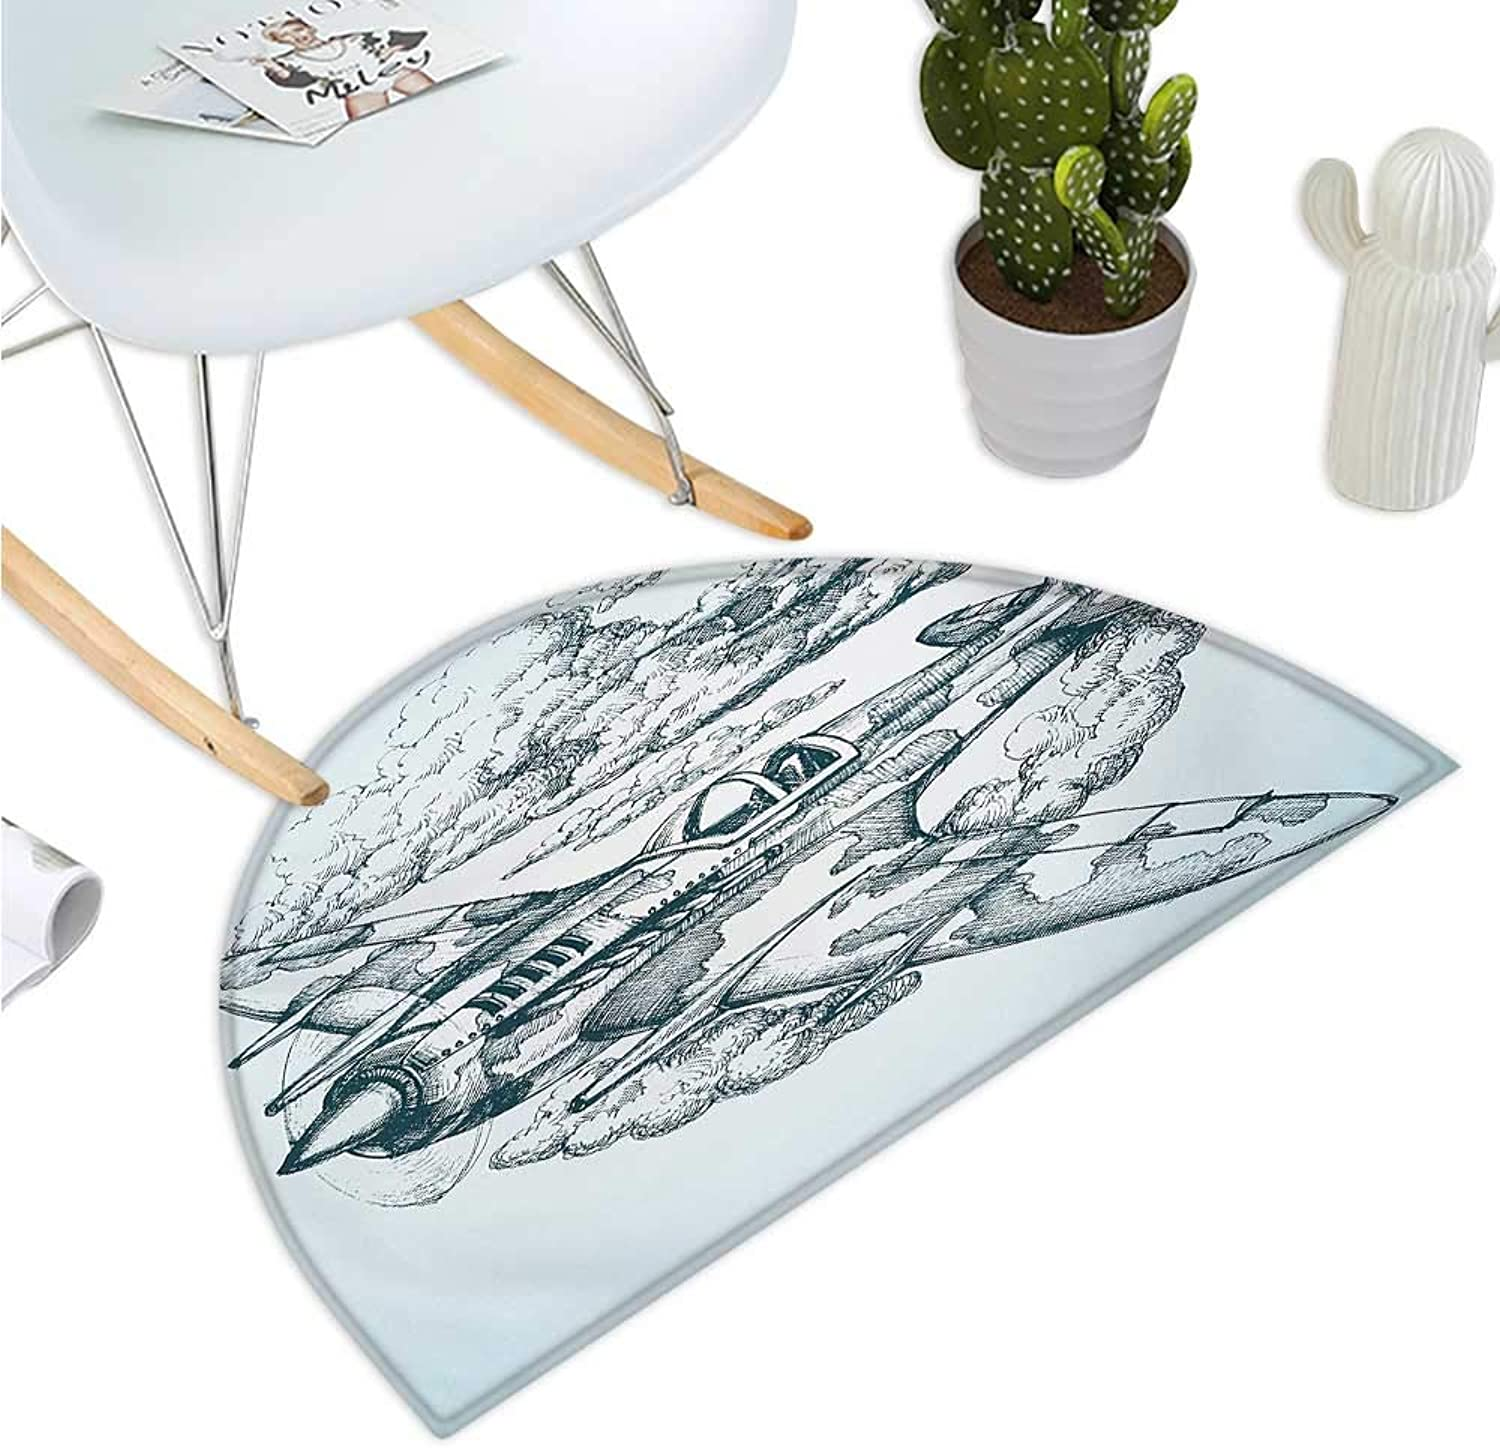 Airplane Semicircular Cushion Plane in The Sky Round Icon Vintage Military Cloud Aerospace Drawing Effect Entry Door Mat H 39.3  xD 59  Baby bluee Black